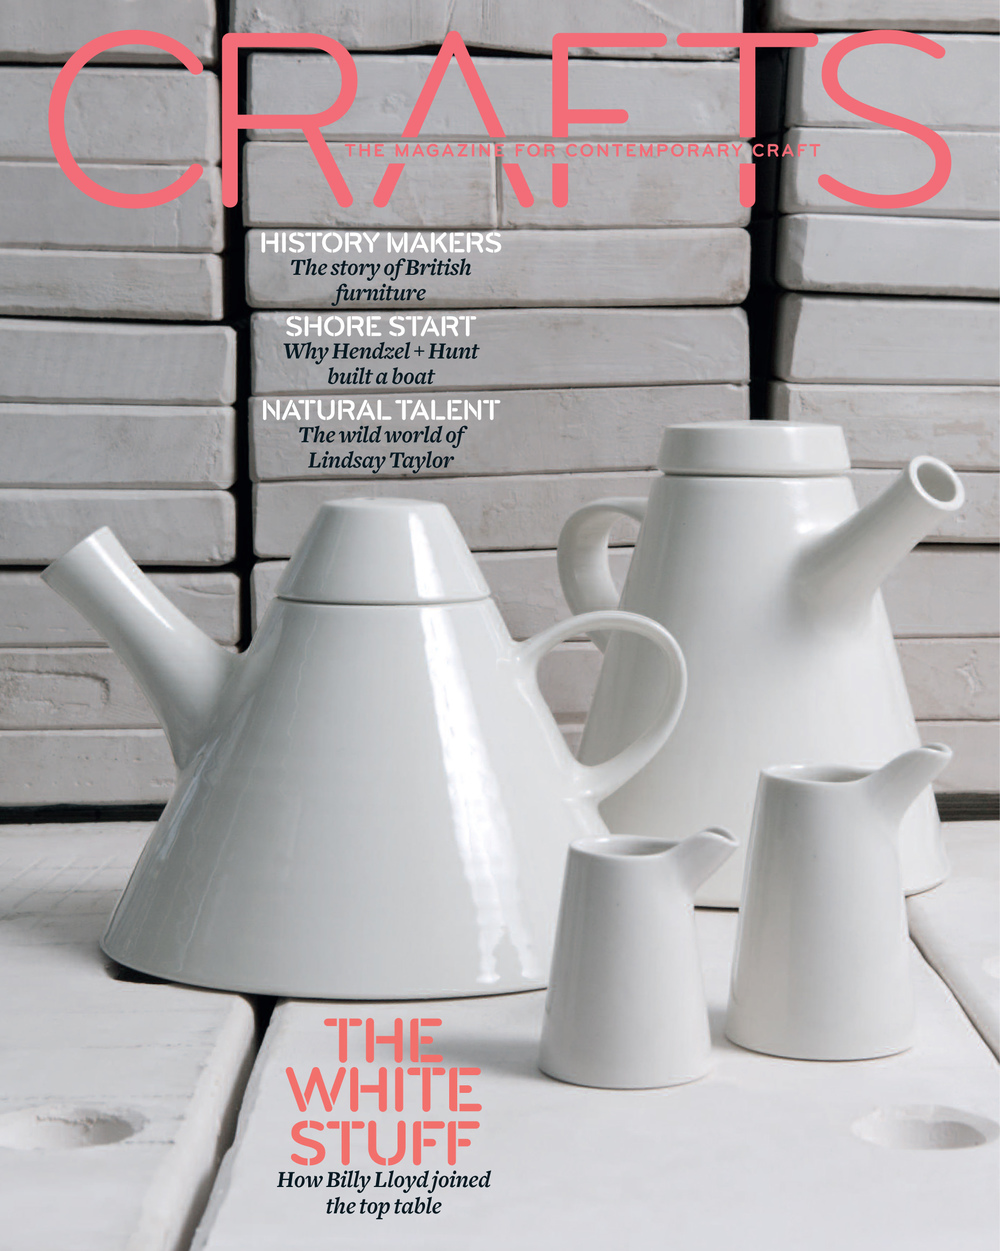 Crafts Magazine September 2014.